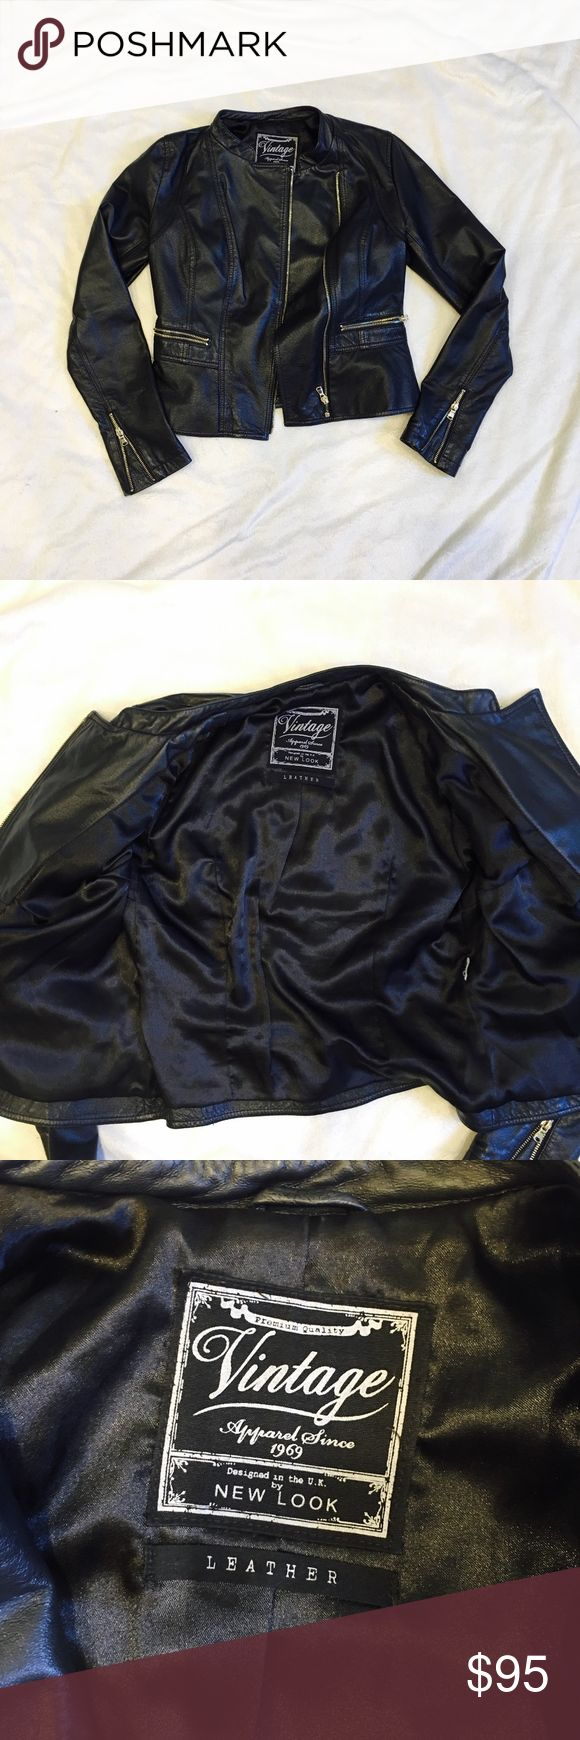 New Look Vintage Leather Jacket Leather peplum jacket. So cute and flattering. Made from real leather. Fits like a small/US 4. Bundle and save or make me an offer xx New Look Jackets & Coats